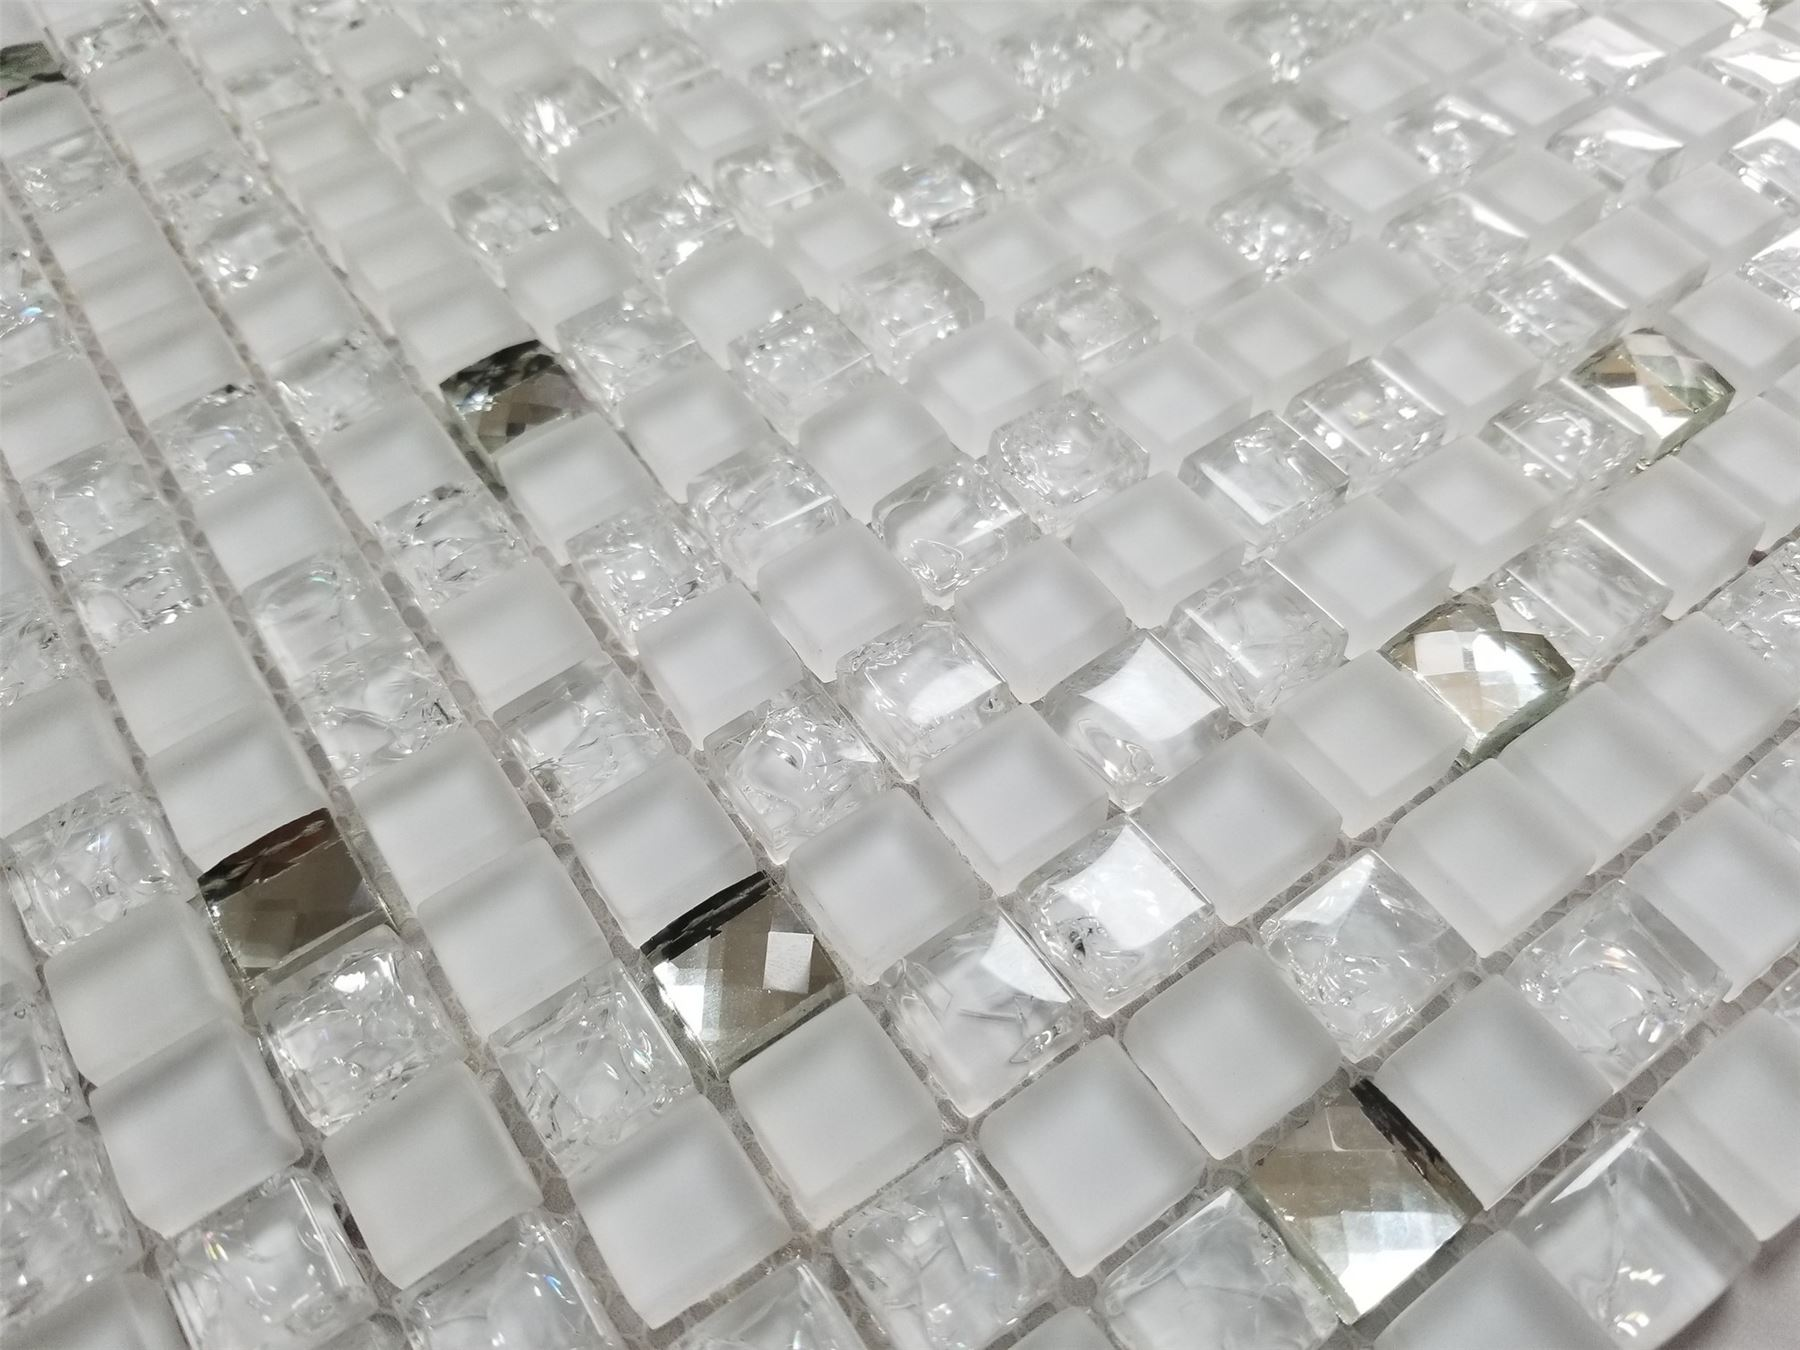 White Crystals Glass Square Mosaic Tiles Sheet Walls Floors Bathroom ...